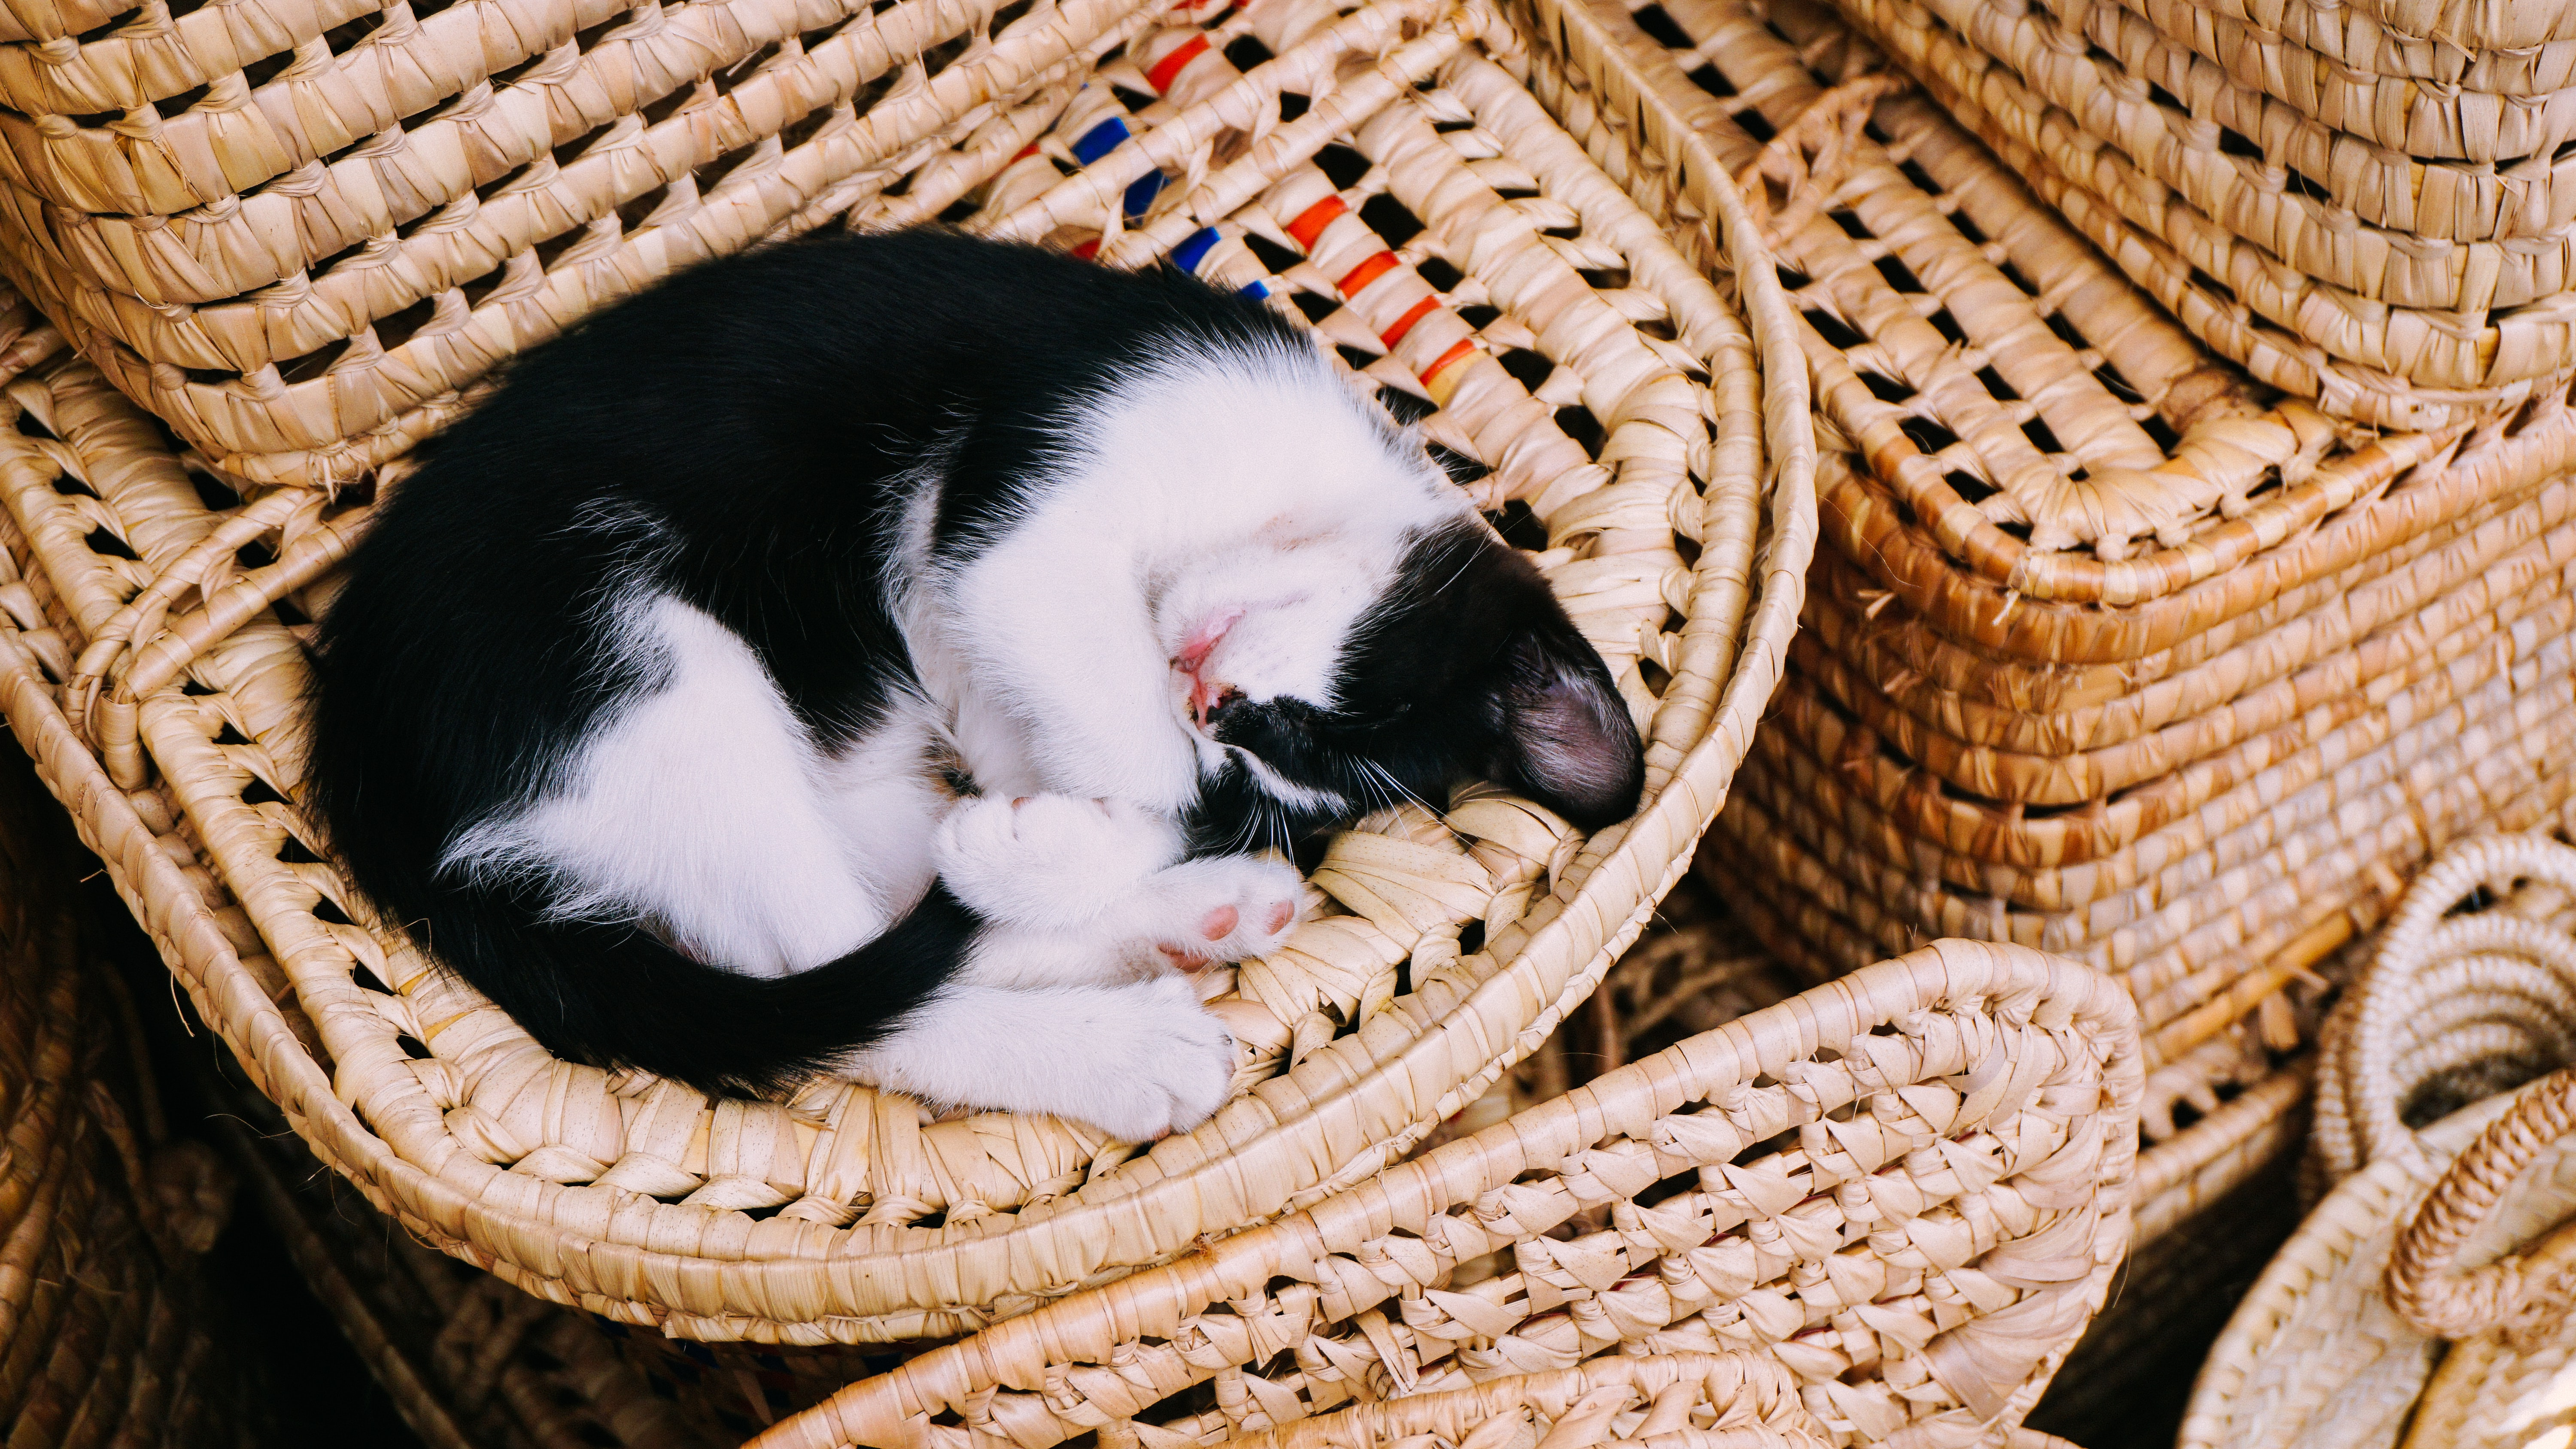 Black and white kitten curled up and sleeping in woven wicker basket